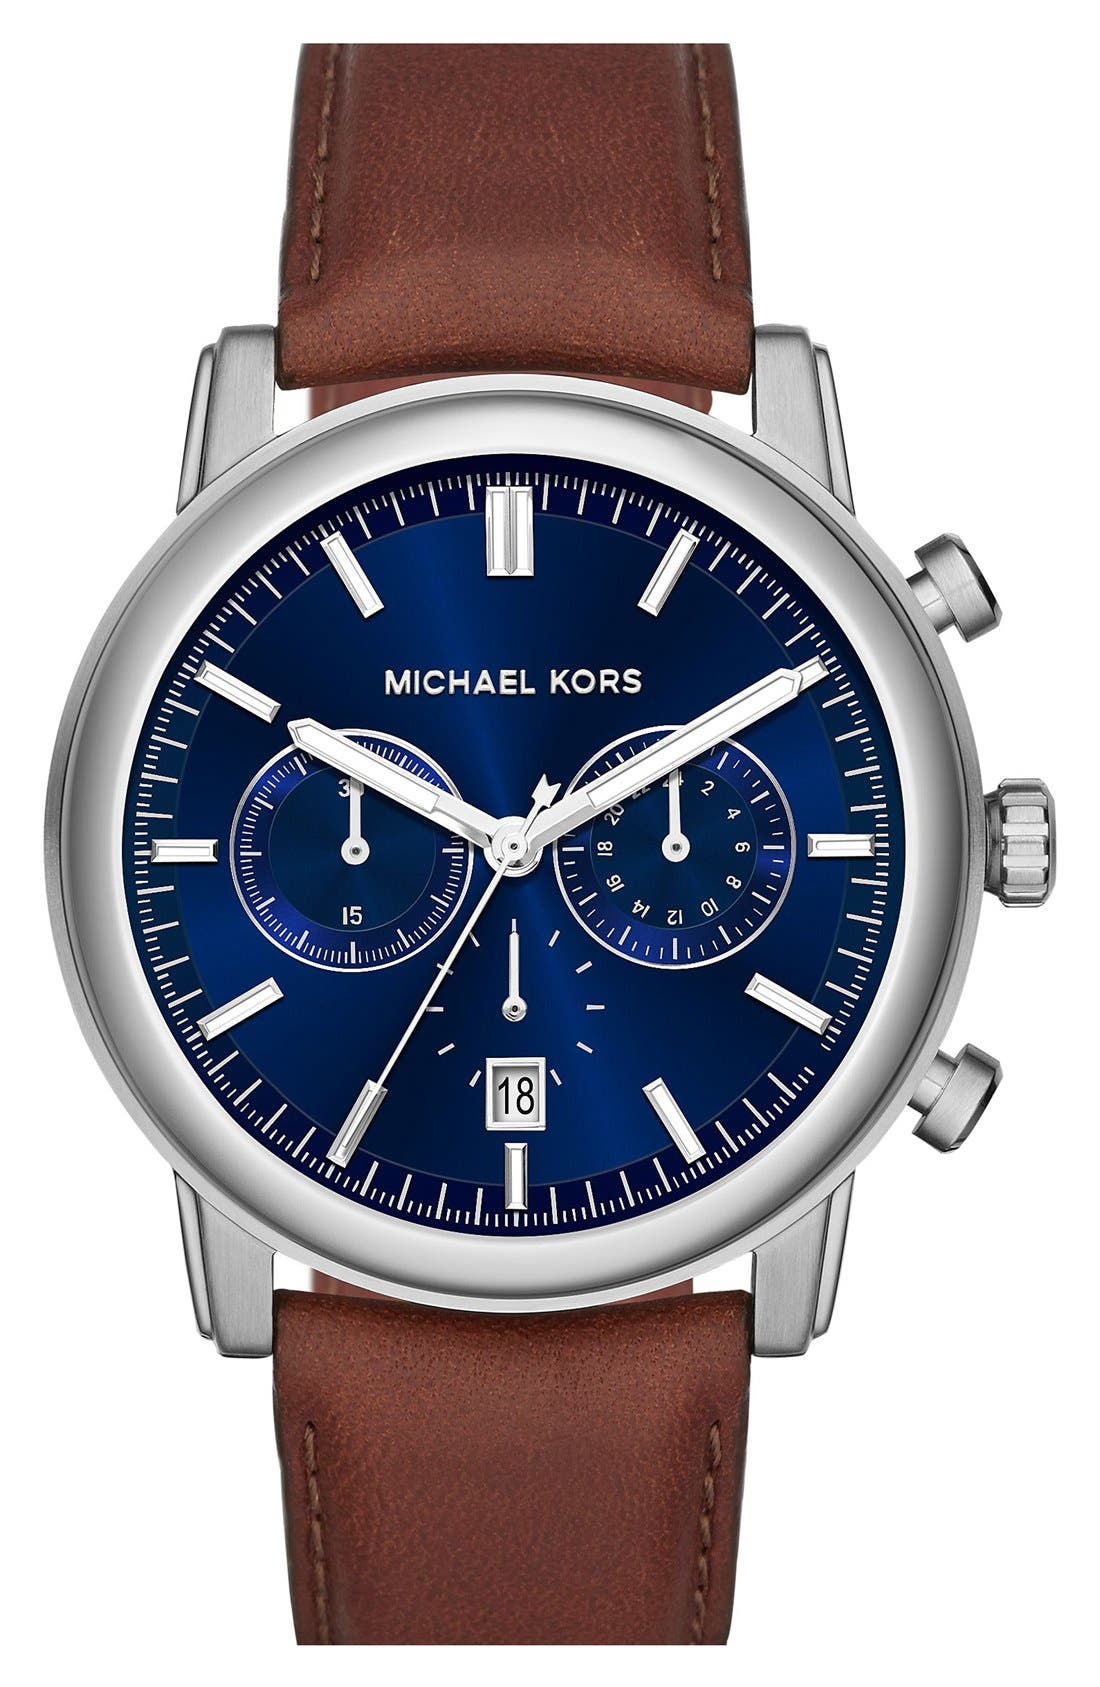 Main Image - Michael Kors 'Pennant' Chronograph Leather Strap Watch, 43mm (Nordstrom Exclusive)